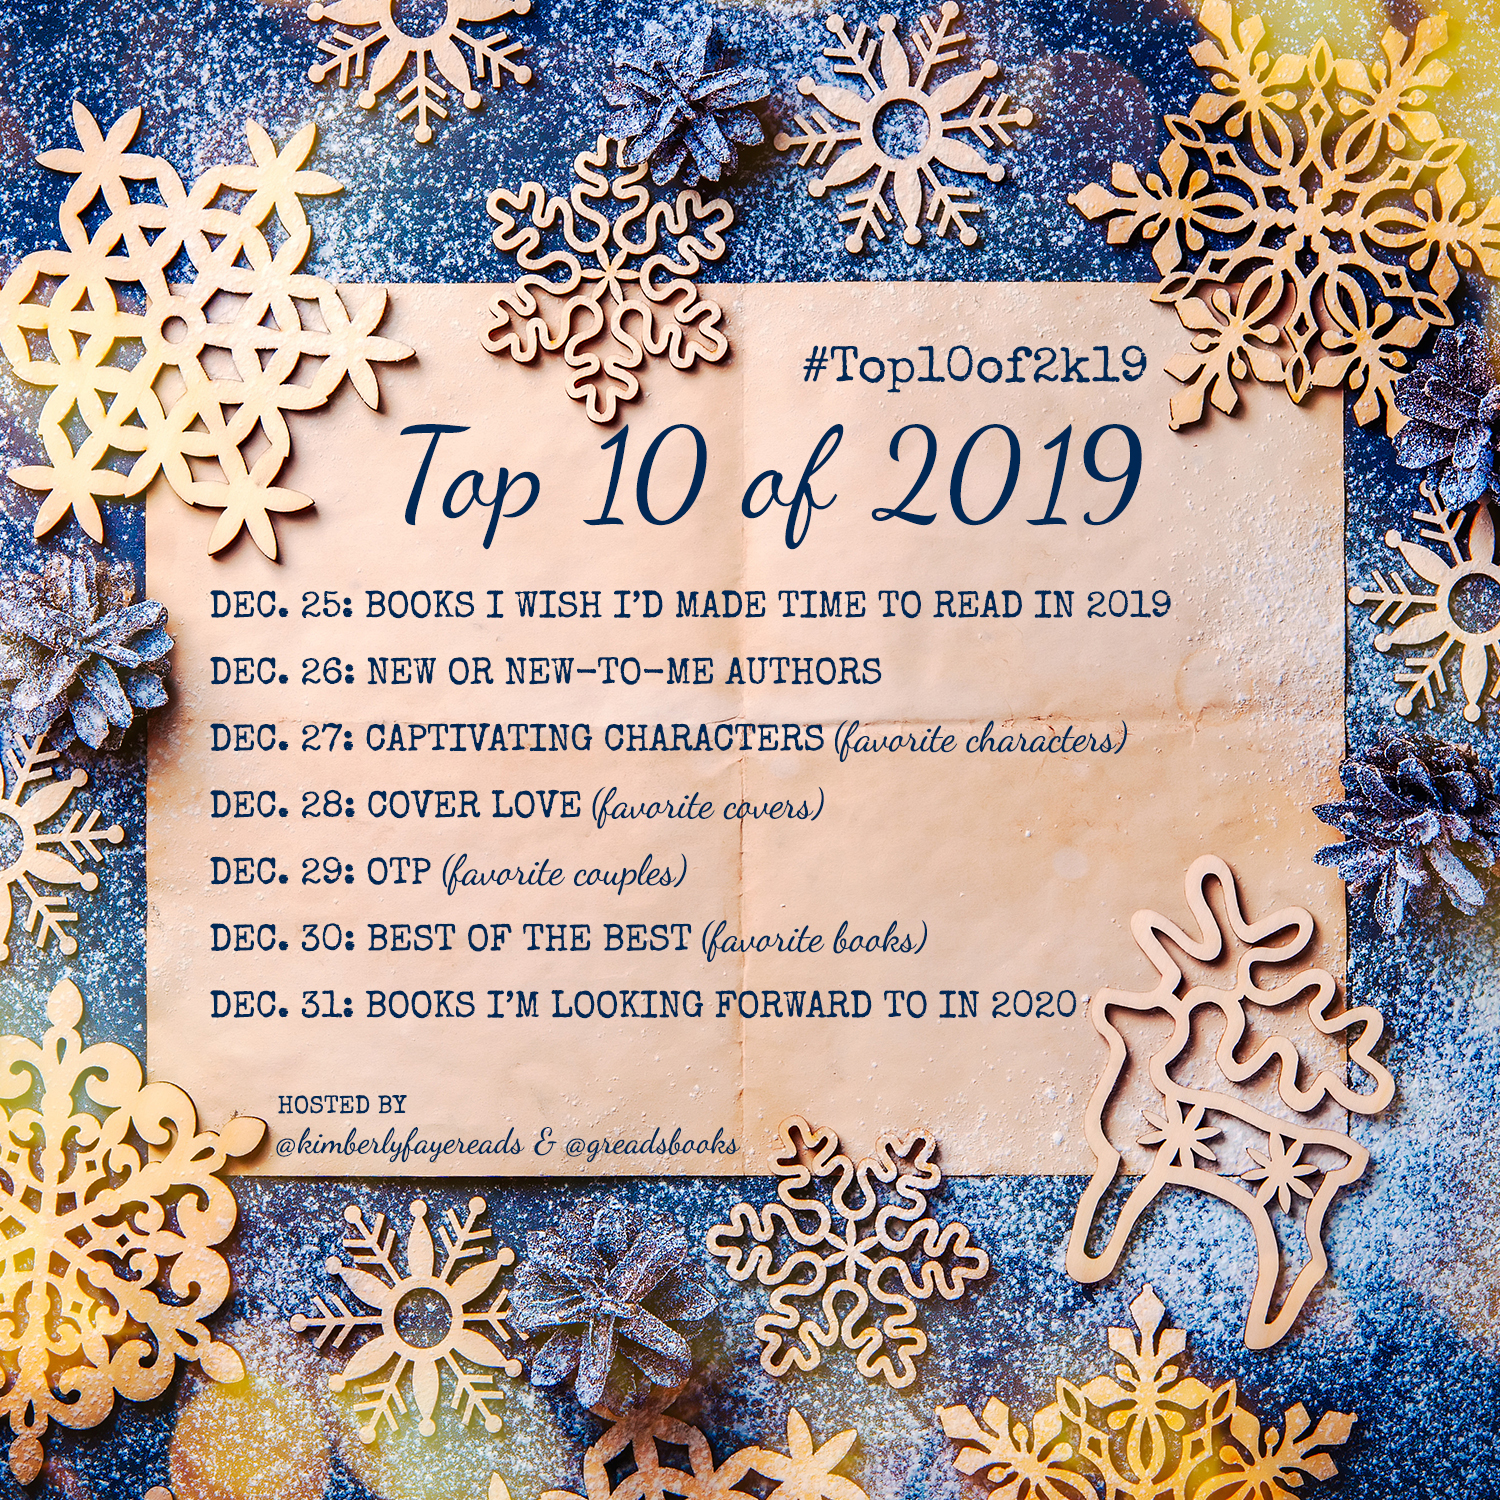 Top 10 of 2019: Announcement and Sign-Up